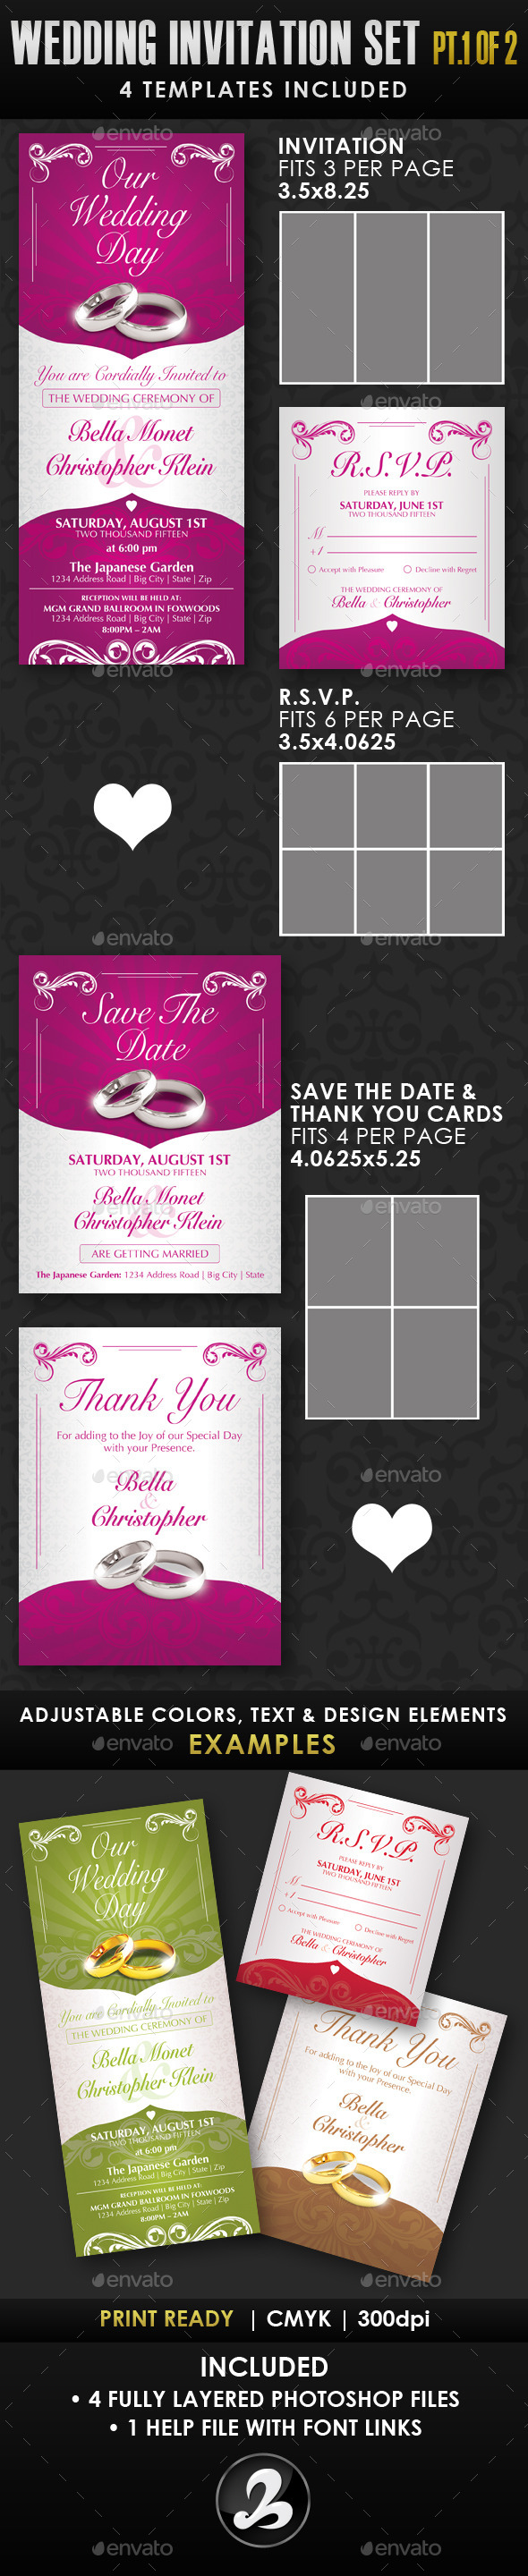 Wedding Invitation Template Set - Vol.1a